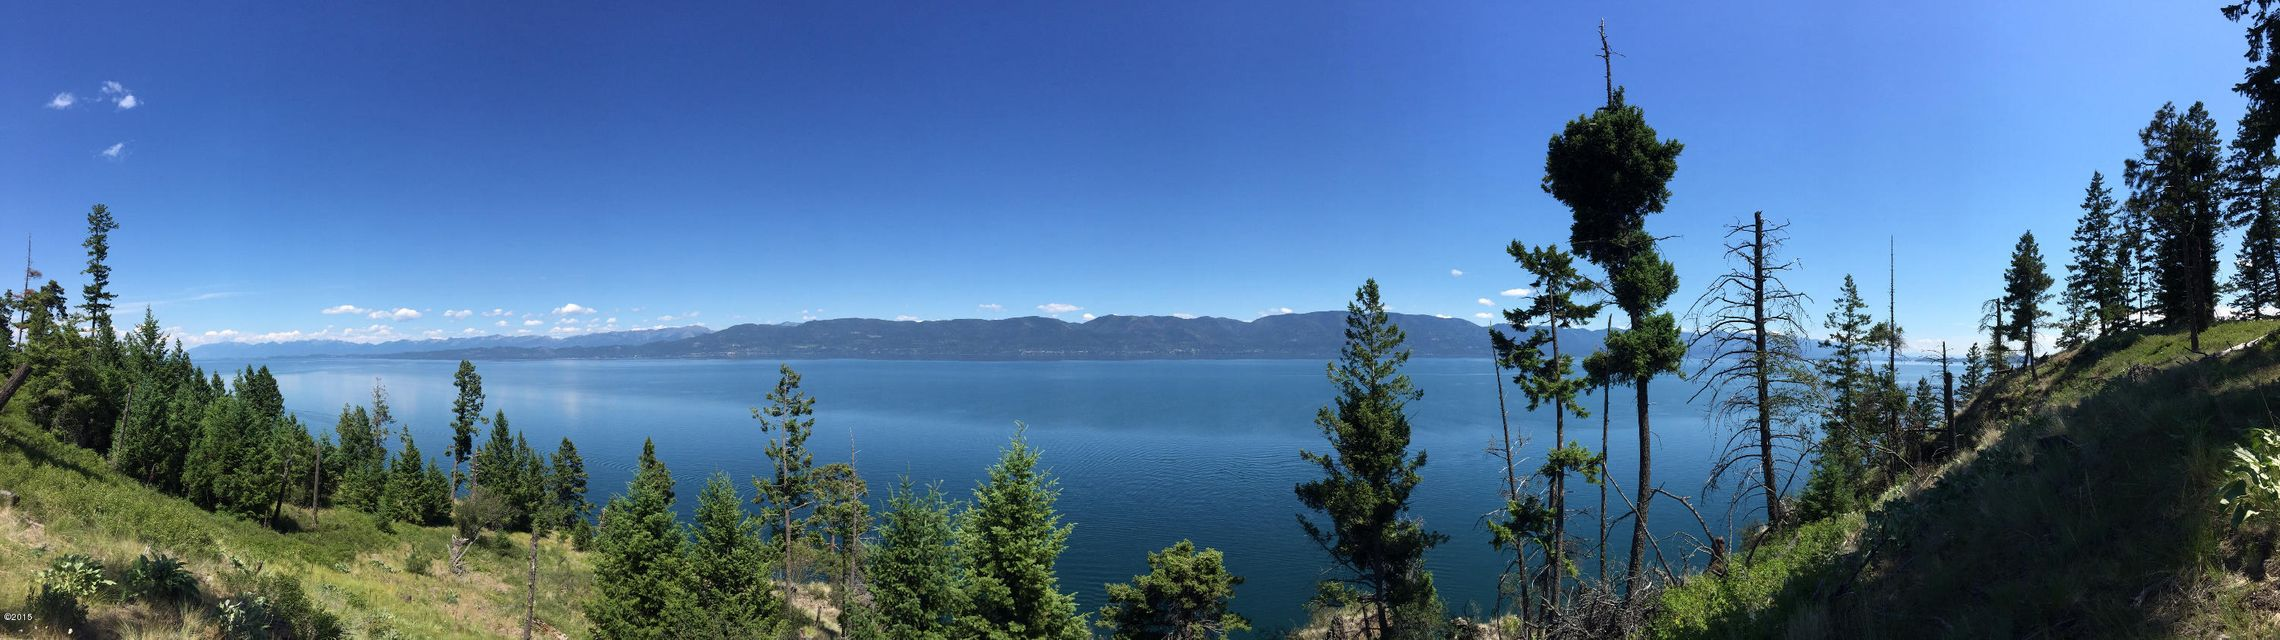 Terreno / Lote por un Venta en Nhn West Shore Flathead Lake Nhn West Shore Flathead Lake Rollins, Montana,59931 Estados Unidos